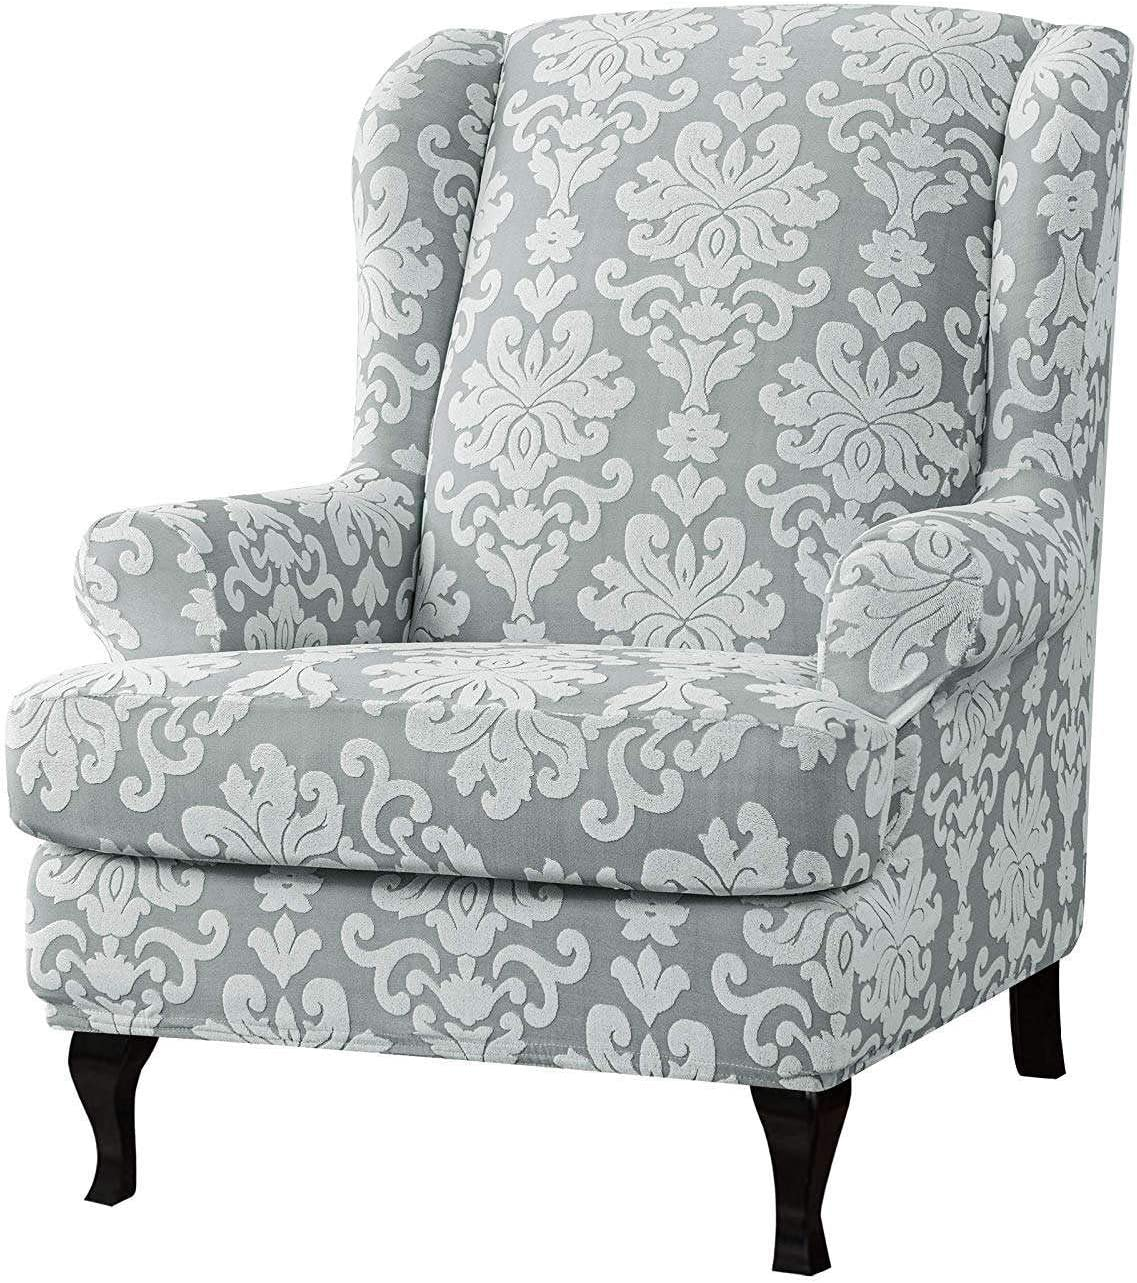 MO&SU Stretch Wingback Chair Sofa Slipcover, 2-Pieces Jacquard Sofa Cover Wing Chair Furniture Protector Couch Covers for Wing Back Armchair-(Sofa Cover+Cushion Cover)-Light Gray